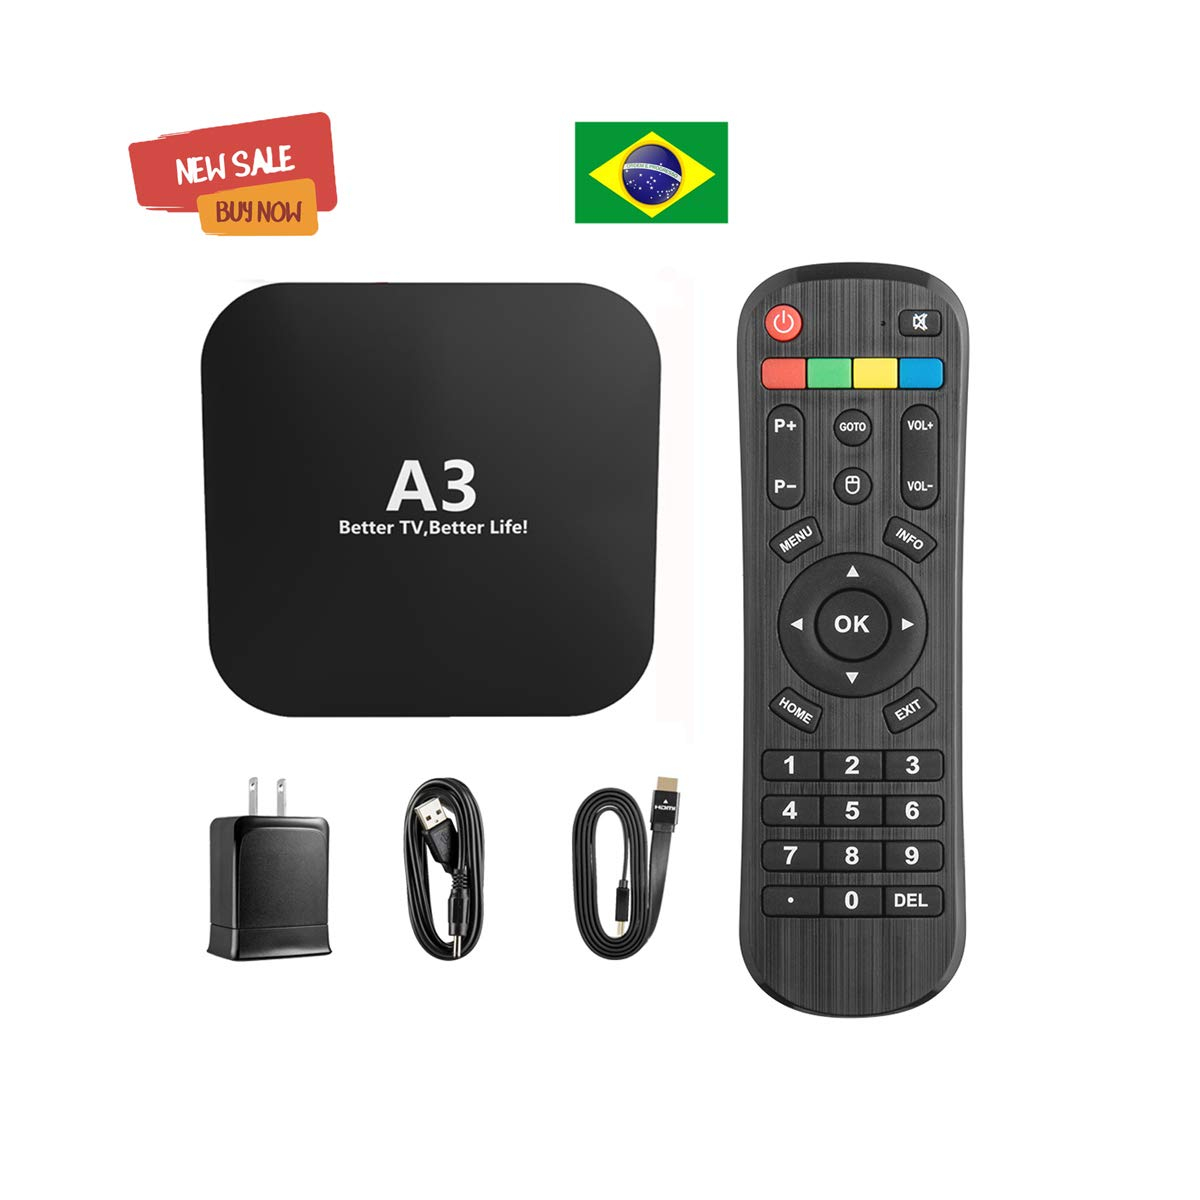 2019 Brazil Box A3 Version Based on A2 HTV5 IPTV 5 6 Plus Better Than IPTV 8 Brazil 200+ Popular Vivo 4K Canais Brasileiros, maciço filmes, vídeo, Drama by BestTV